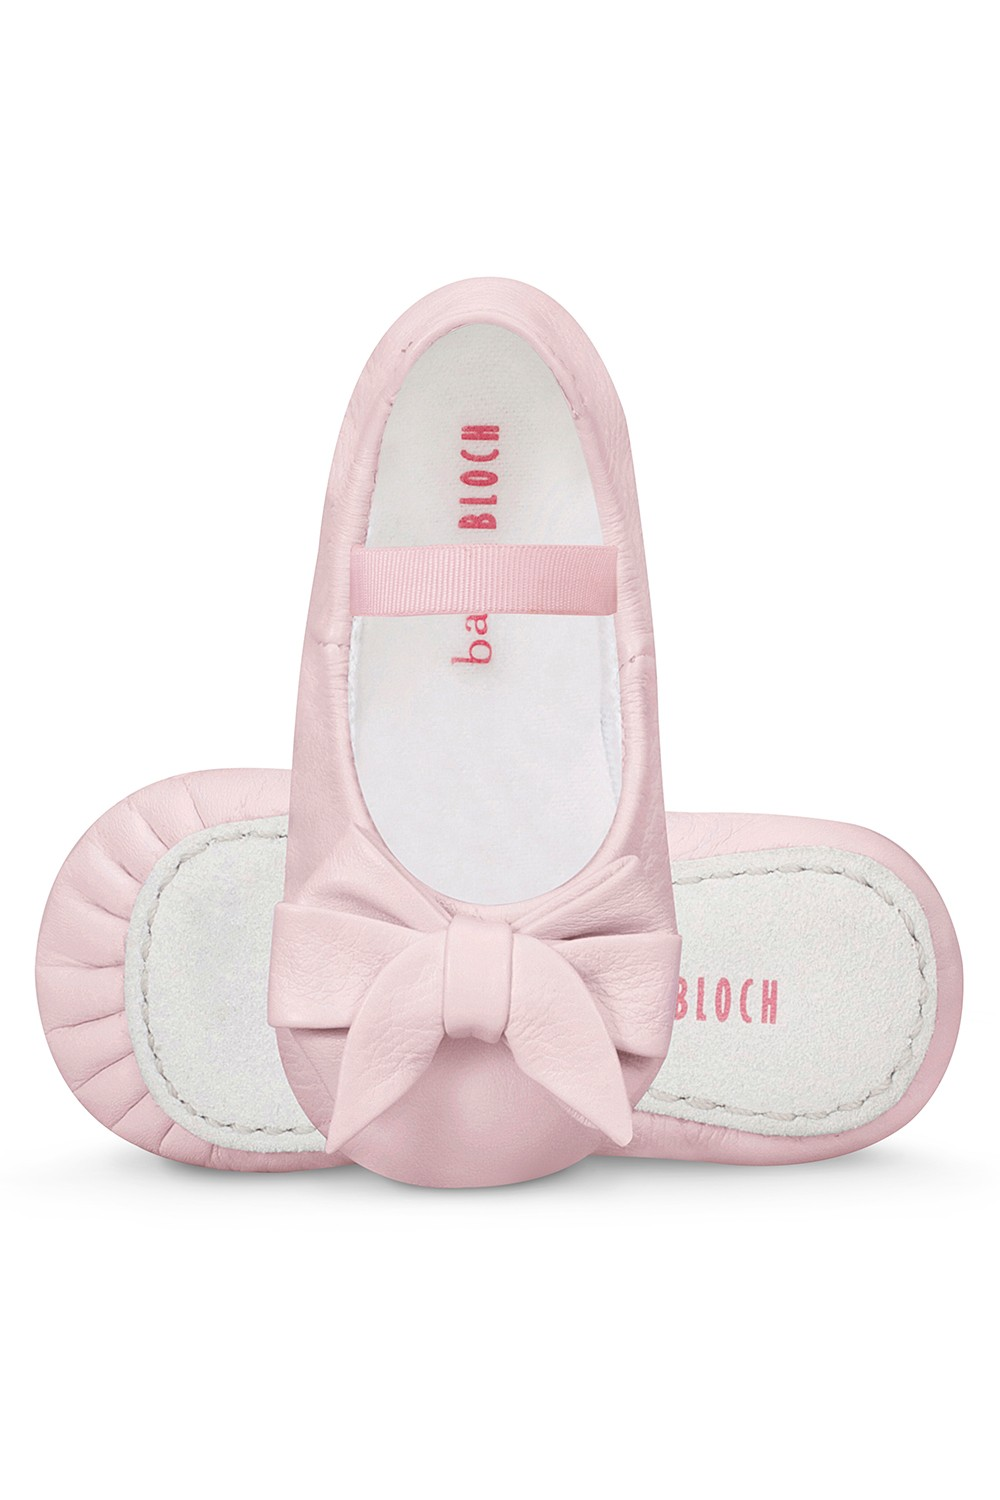 Ayva - Baby Babies Fashion Shoes